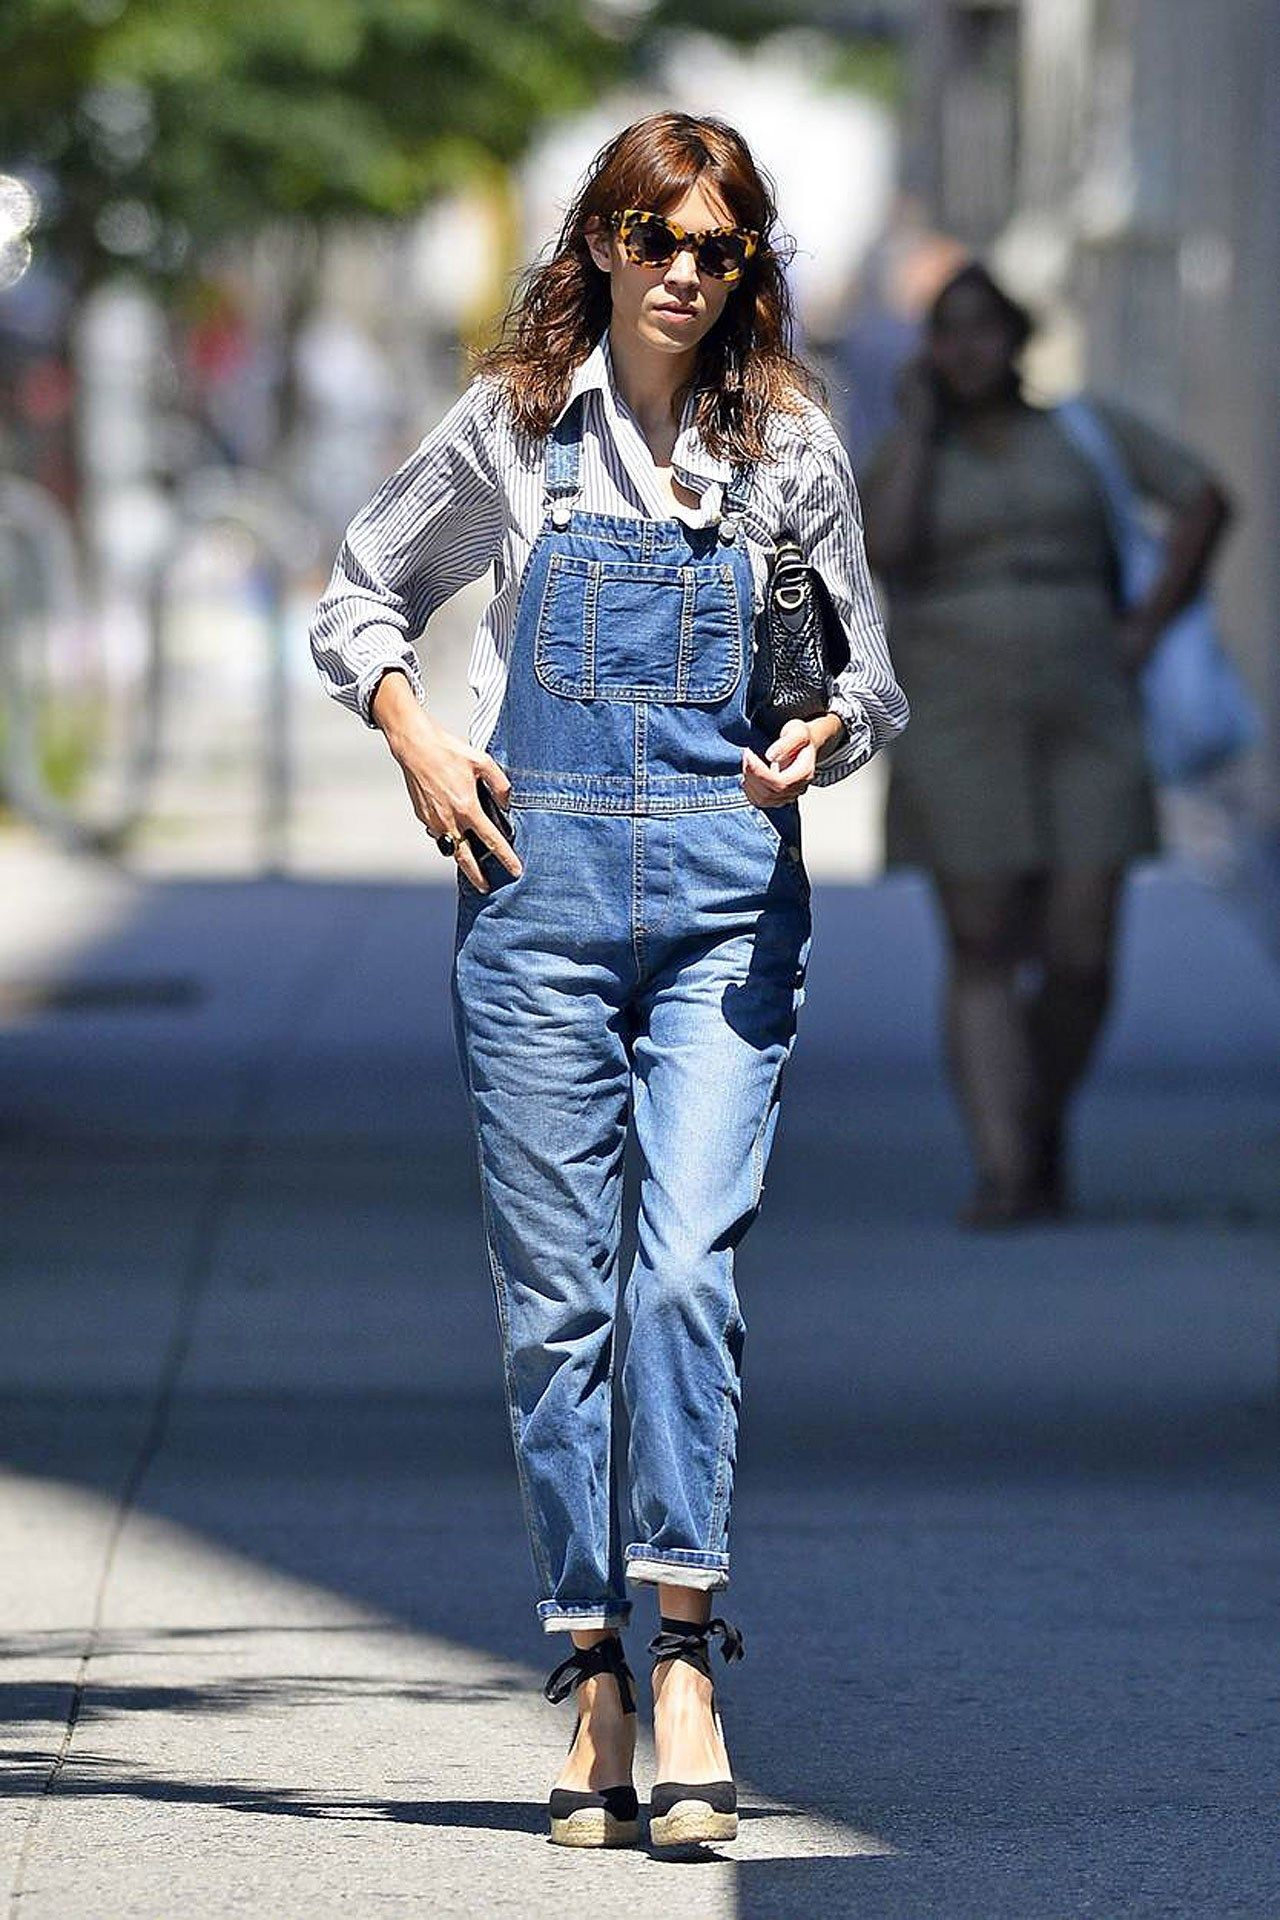 343ebb8ab65 Will dungarees ever go out of style